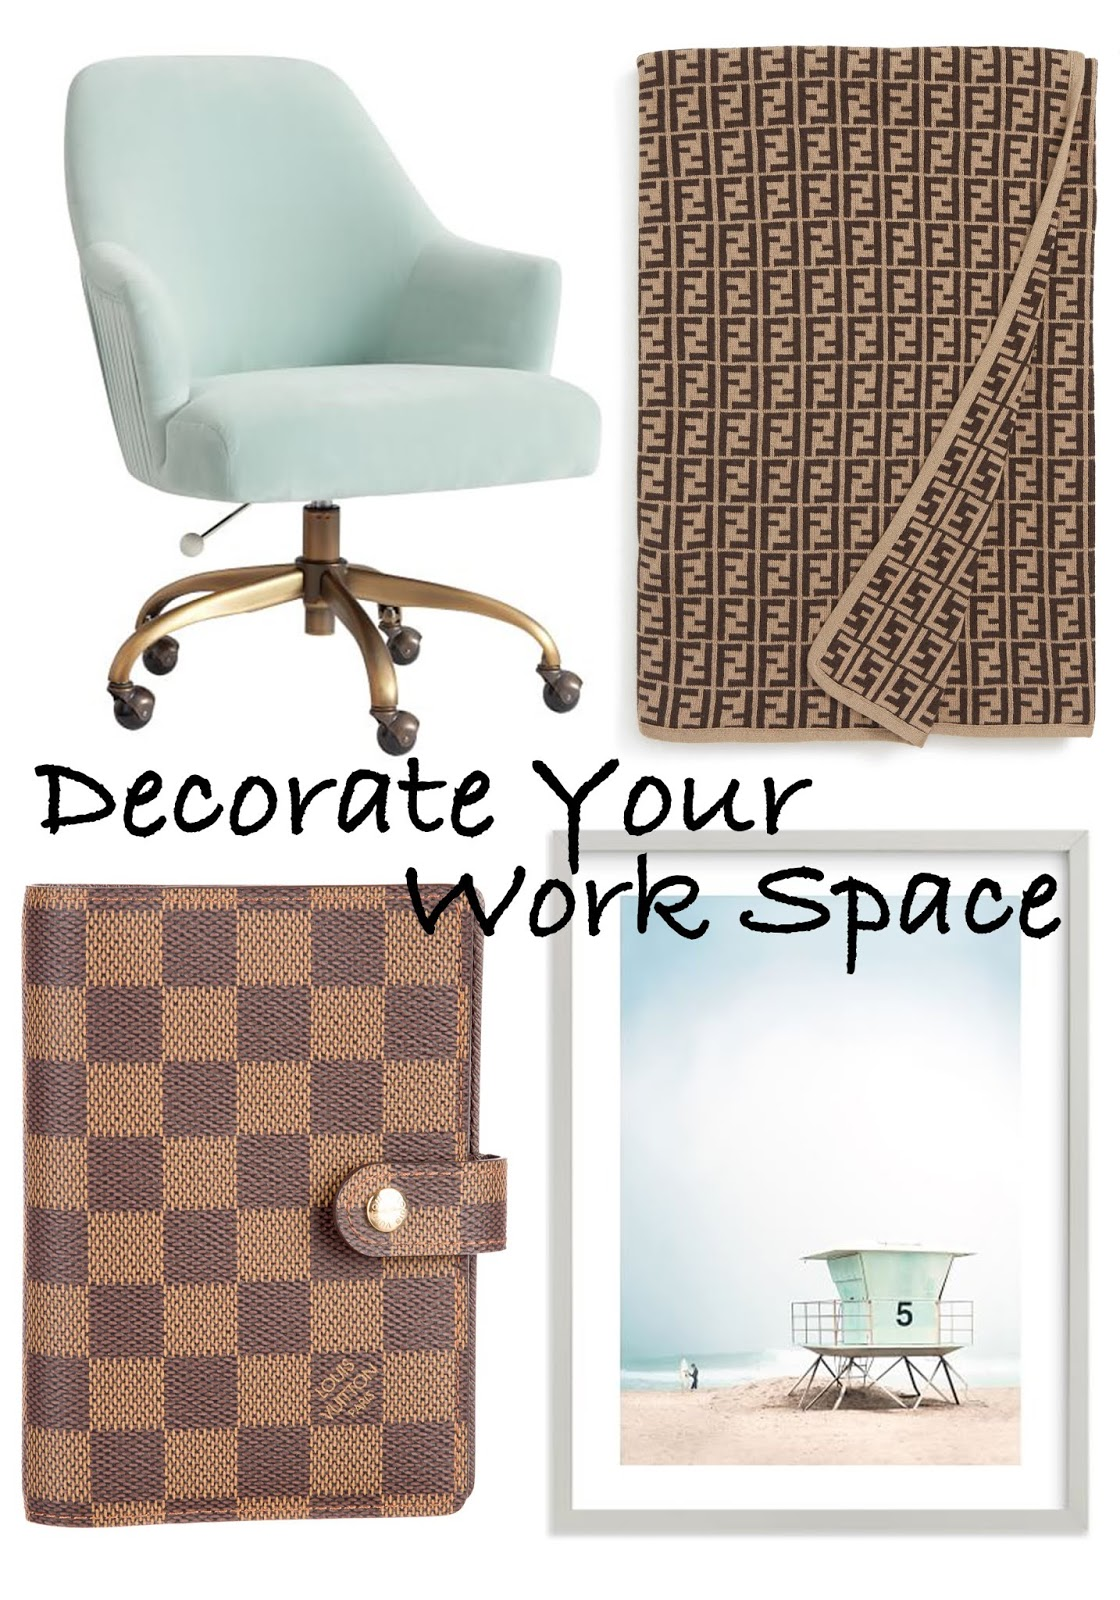 Decorate Your Work Space